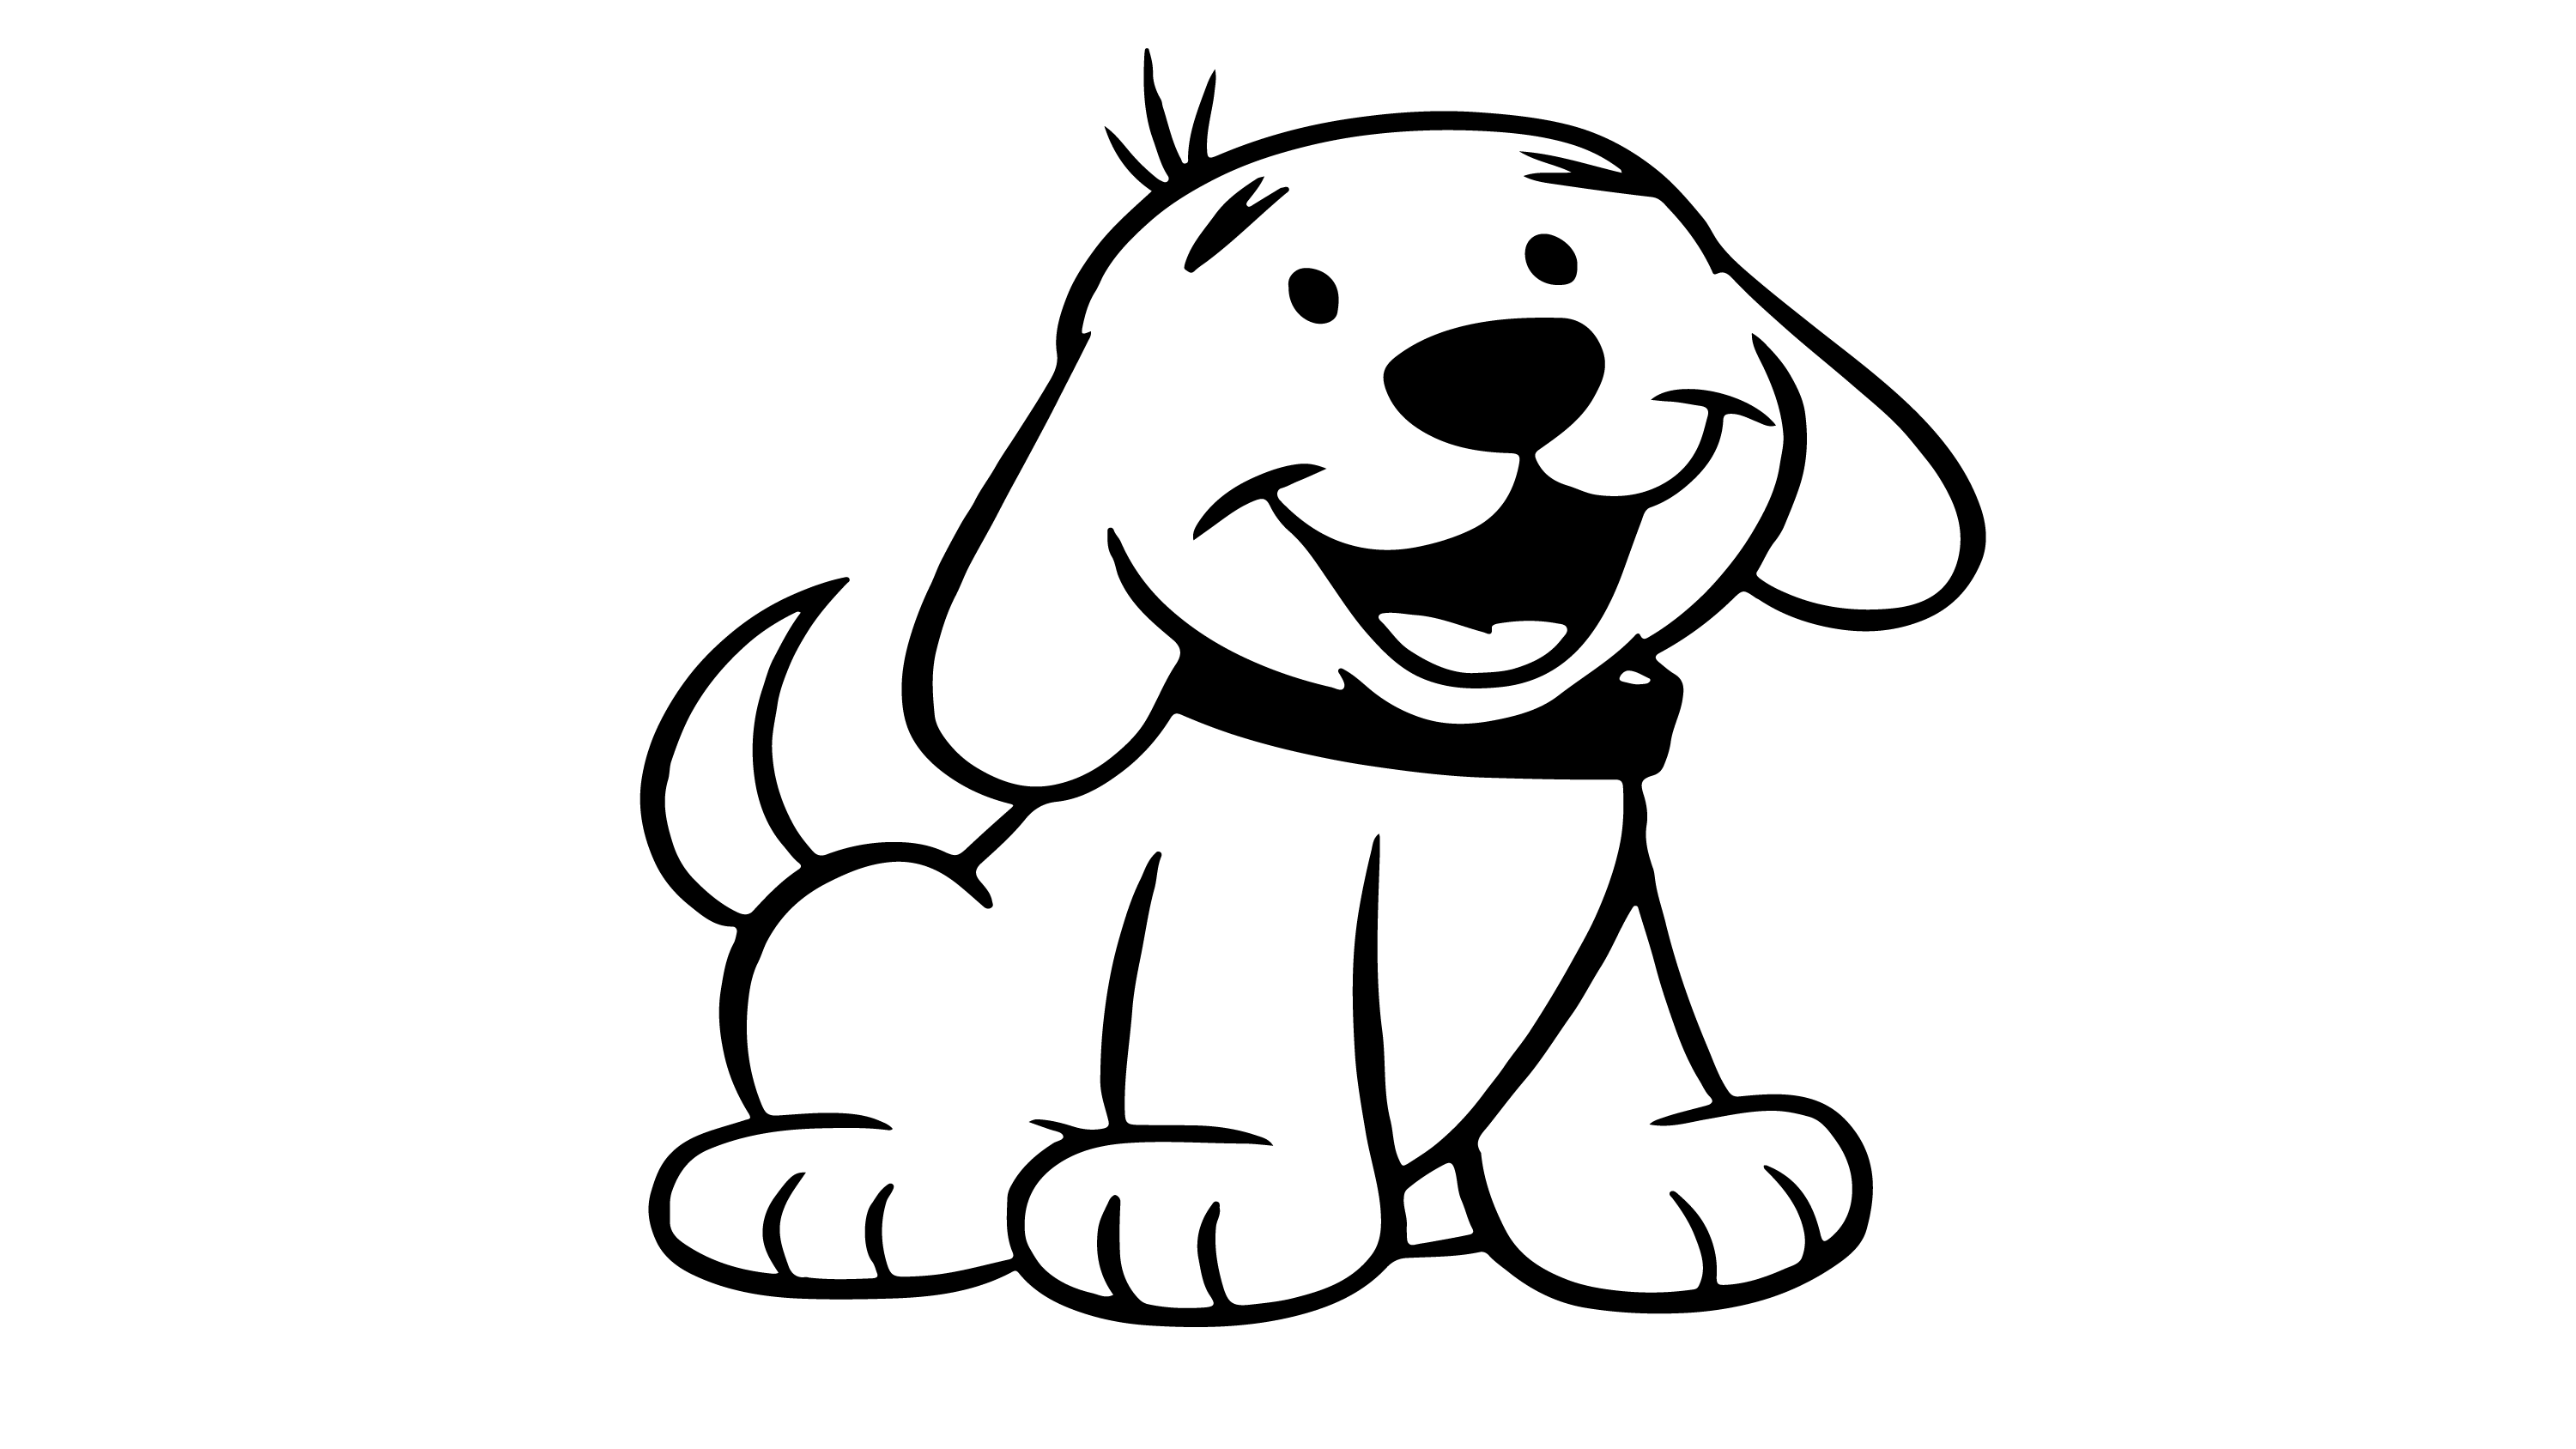 Dog Coloring Page Coloring Videos For Kids Coloring Games Dog Coloring Page Coloring For Kids Coloring Games For Kids